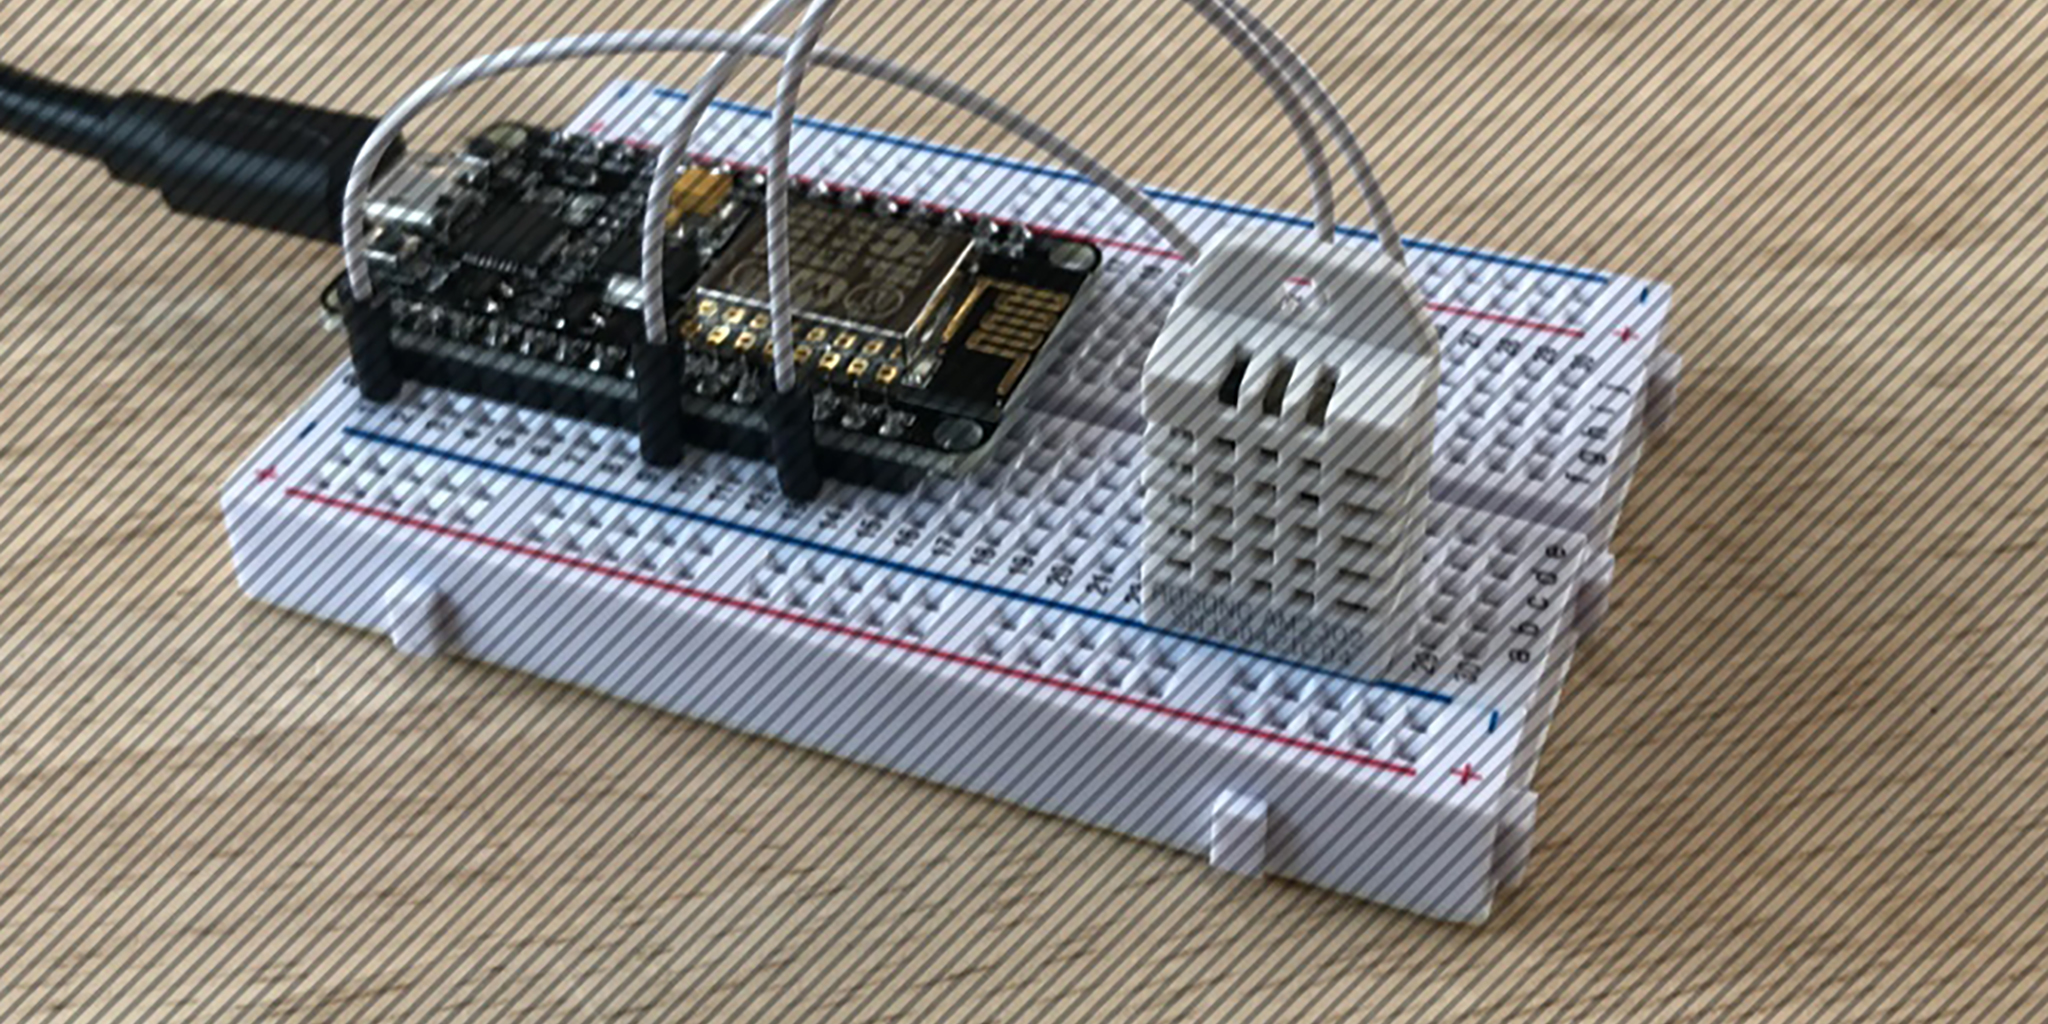 Using a NodeMCU and Light Sensor to Build a JavaScript Night